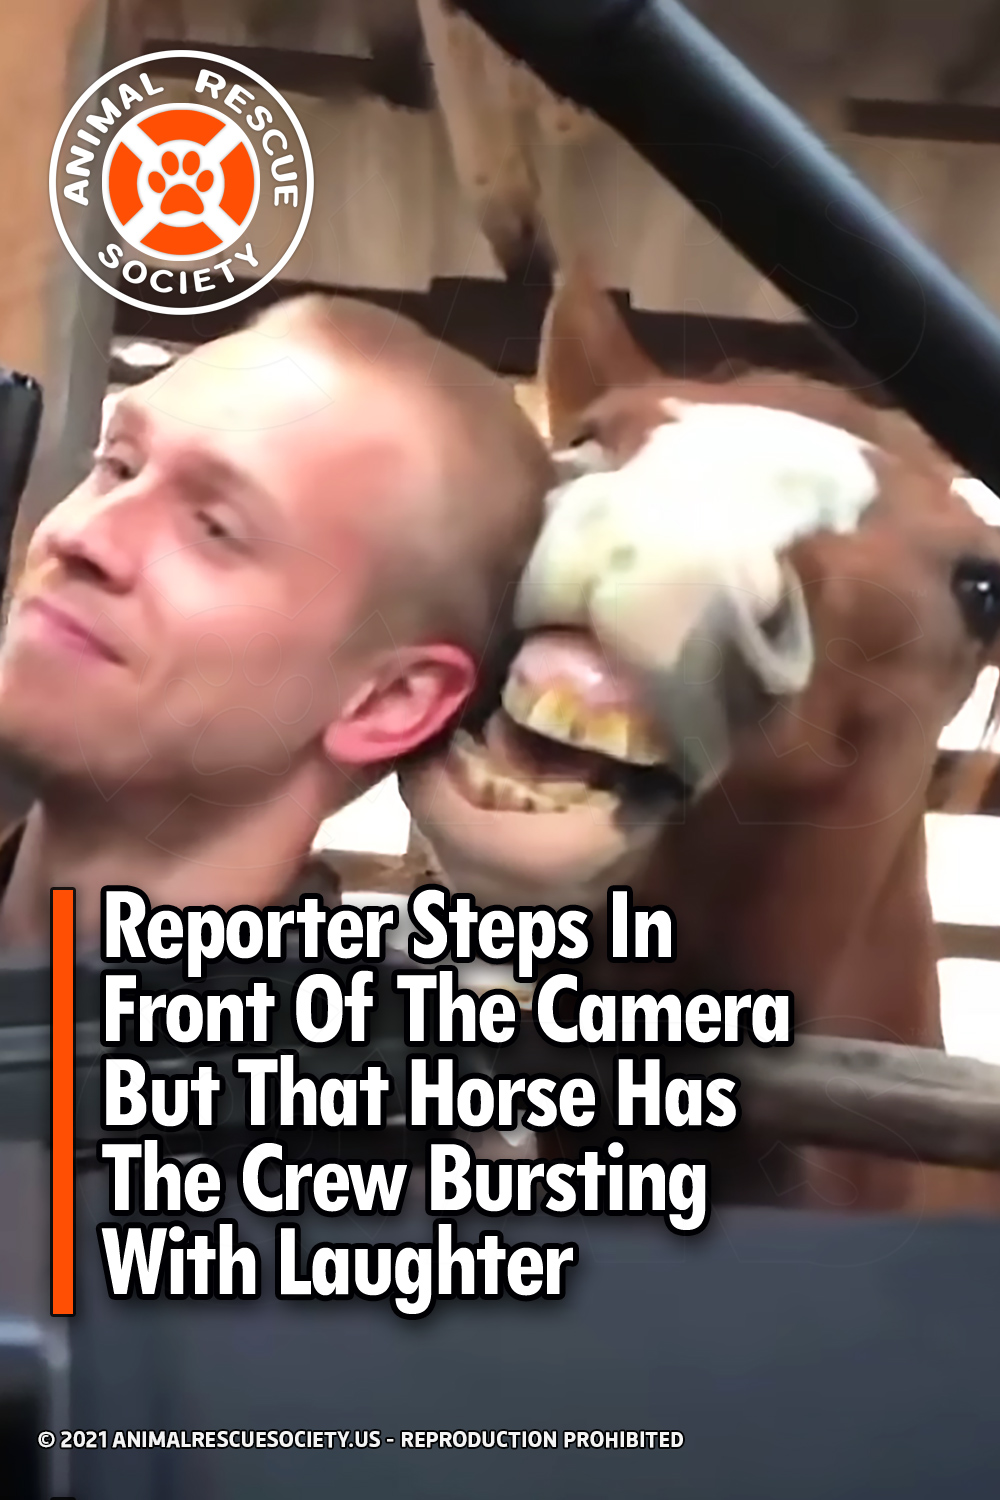 Reporter Steps In Front Of The Camera But That Horse Has The Crew Bursting With Laughter